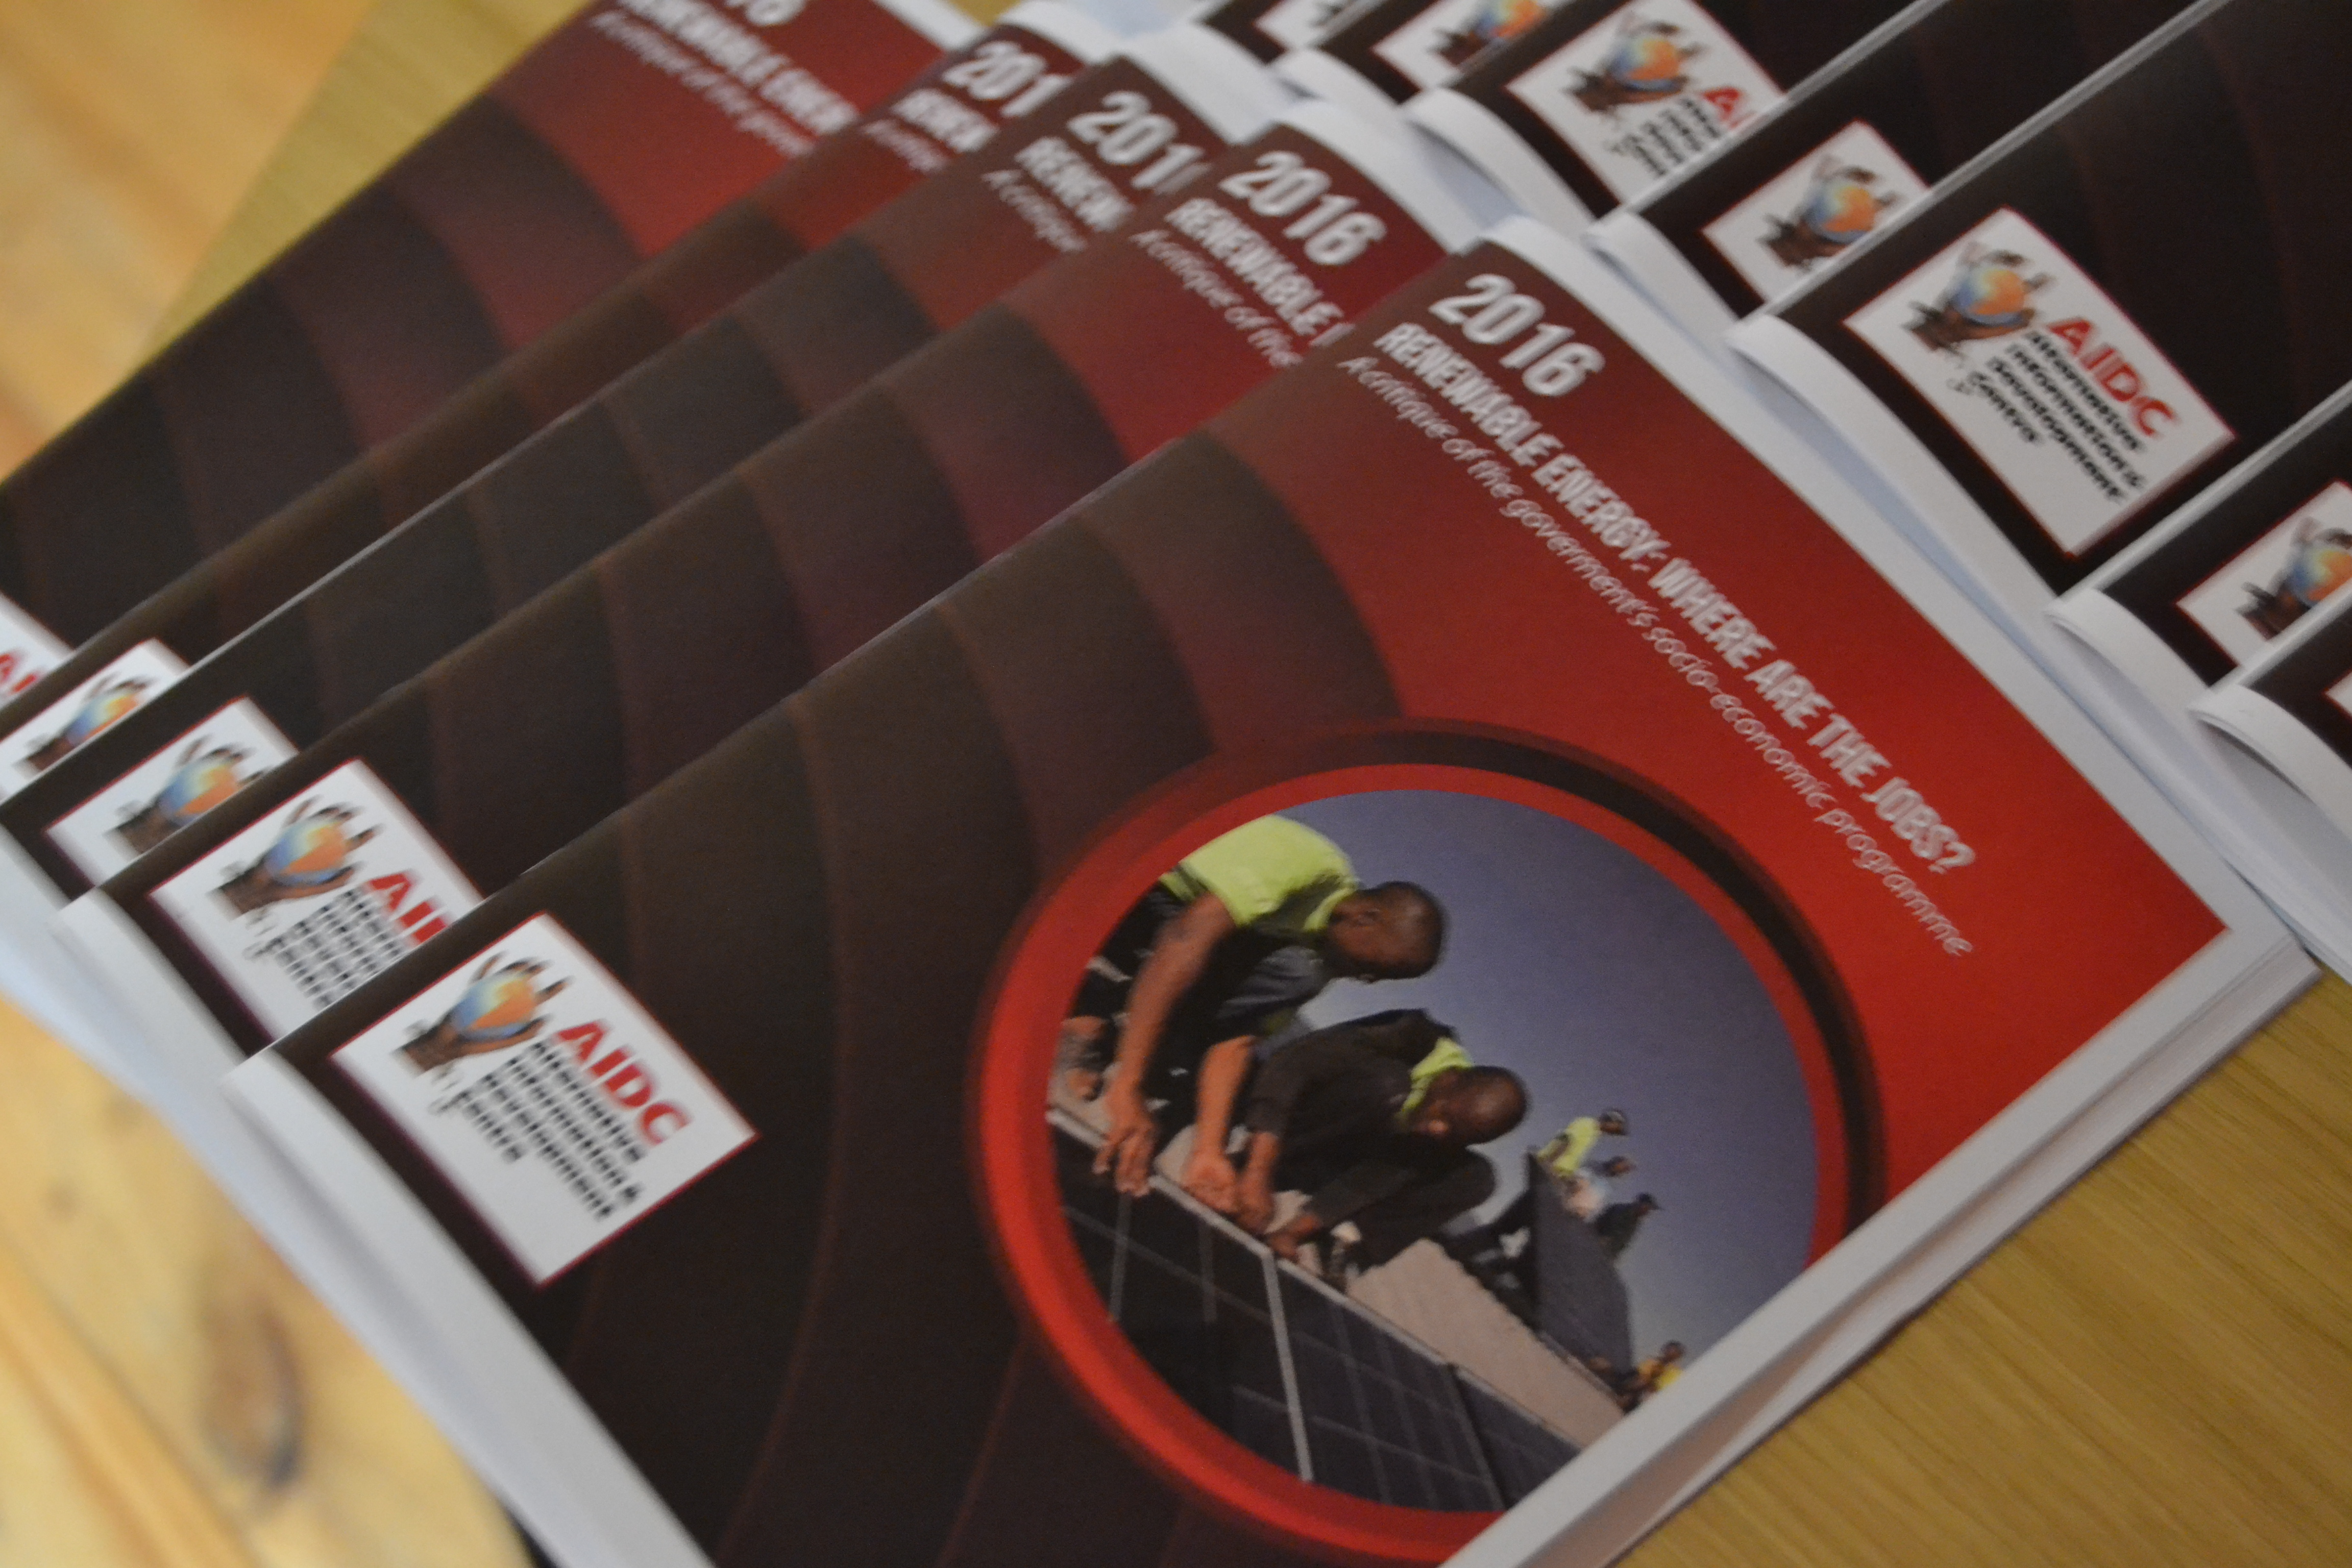 Media Package: Renewable Energy – Where are the jobs? AIDC has commissioned research on this topic to Liz McDaid (The Green Connection). The results are now available as a booklet.  See more